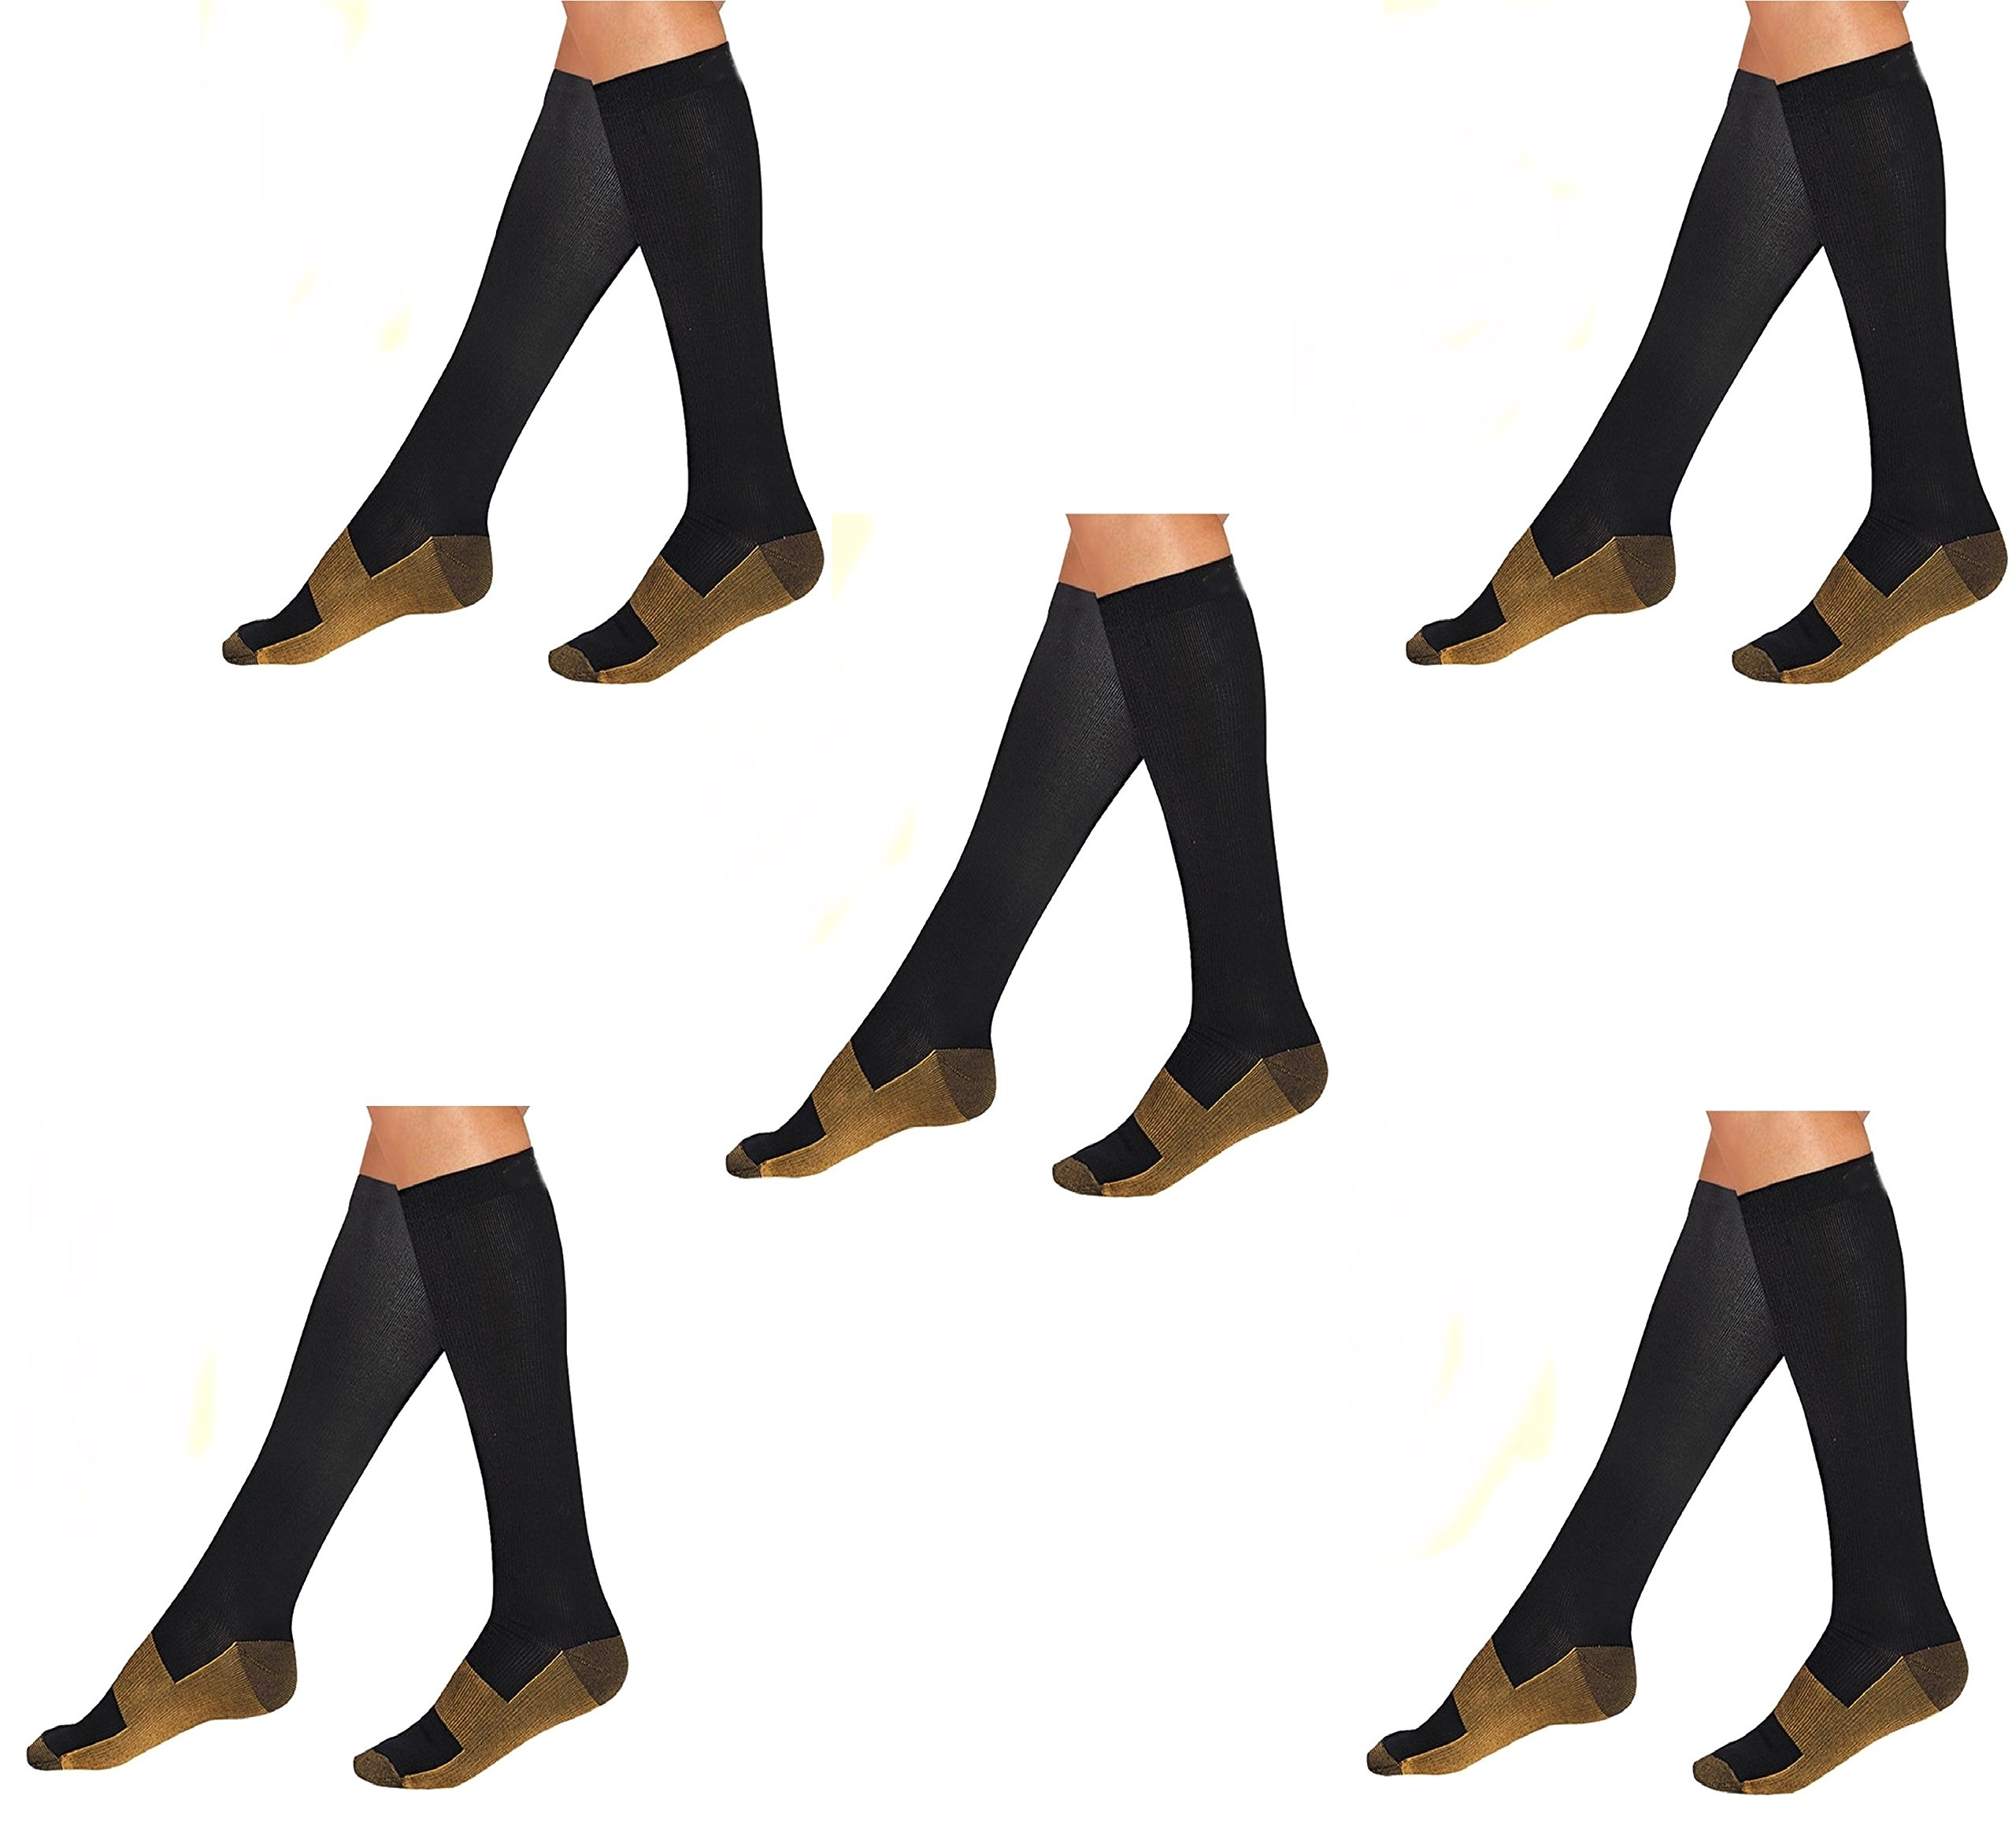 5 Pair Lg/XL Black/Gold - Bcurb Graduated Compression Socks Below Knee Calves High Support Recovery Stockings Aid Blood Circulation Relieves Feet Foot Calf Ankle Pain and Aches - Men & Women by Bcurb